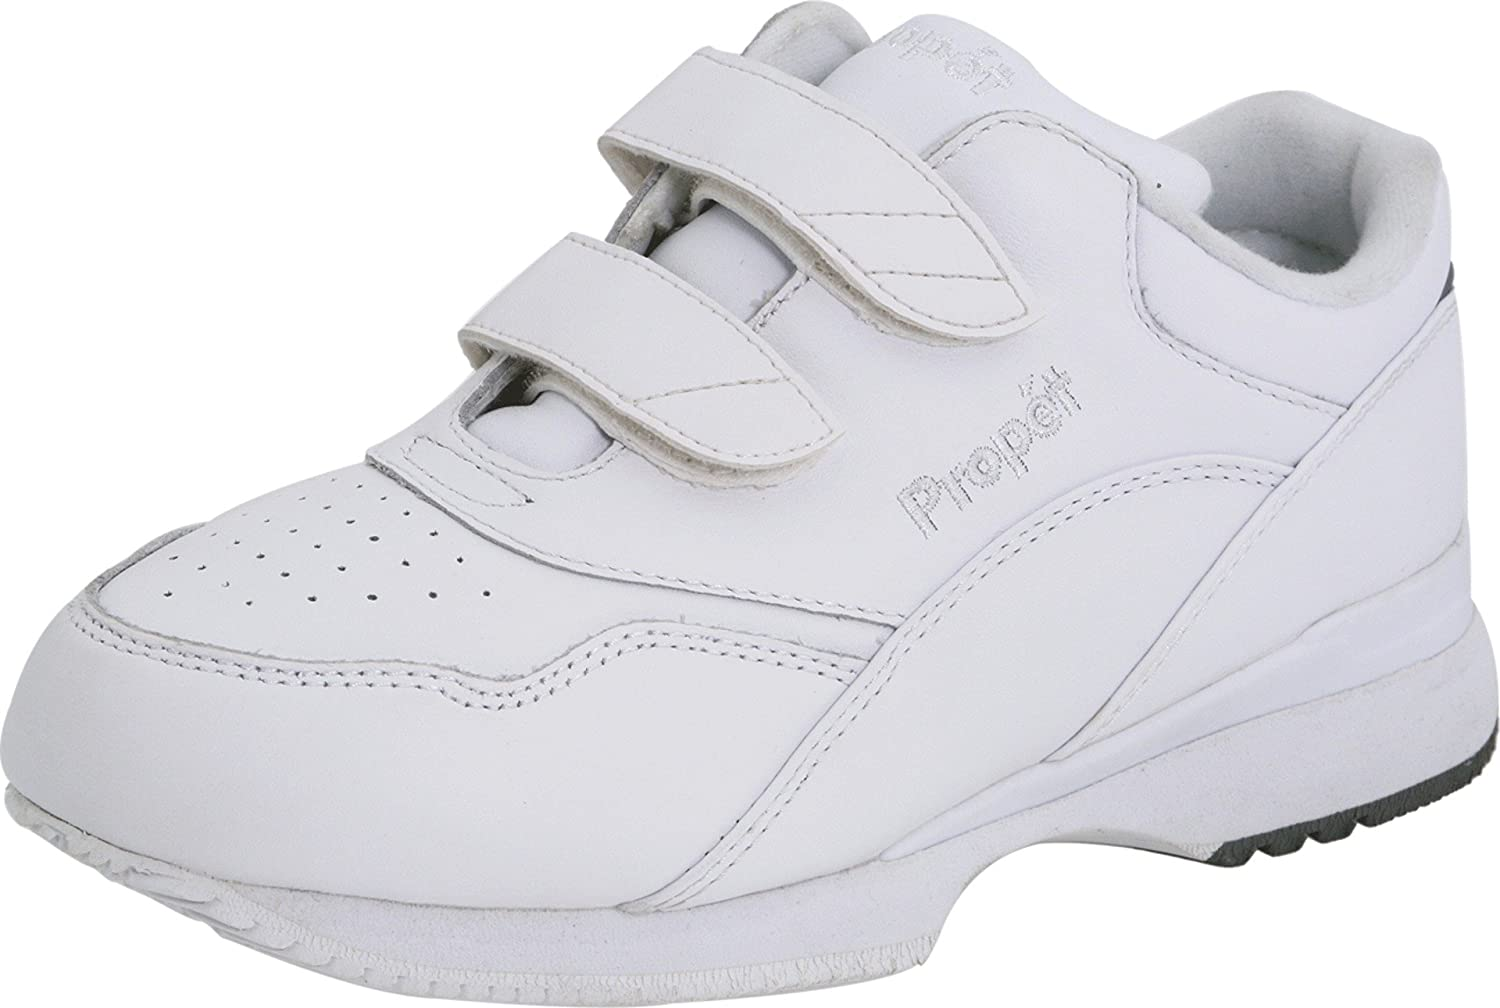 Propet Women's Tour Walker Strap Sneaker B000BO13P6 9.5 N US|White